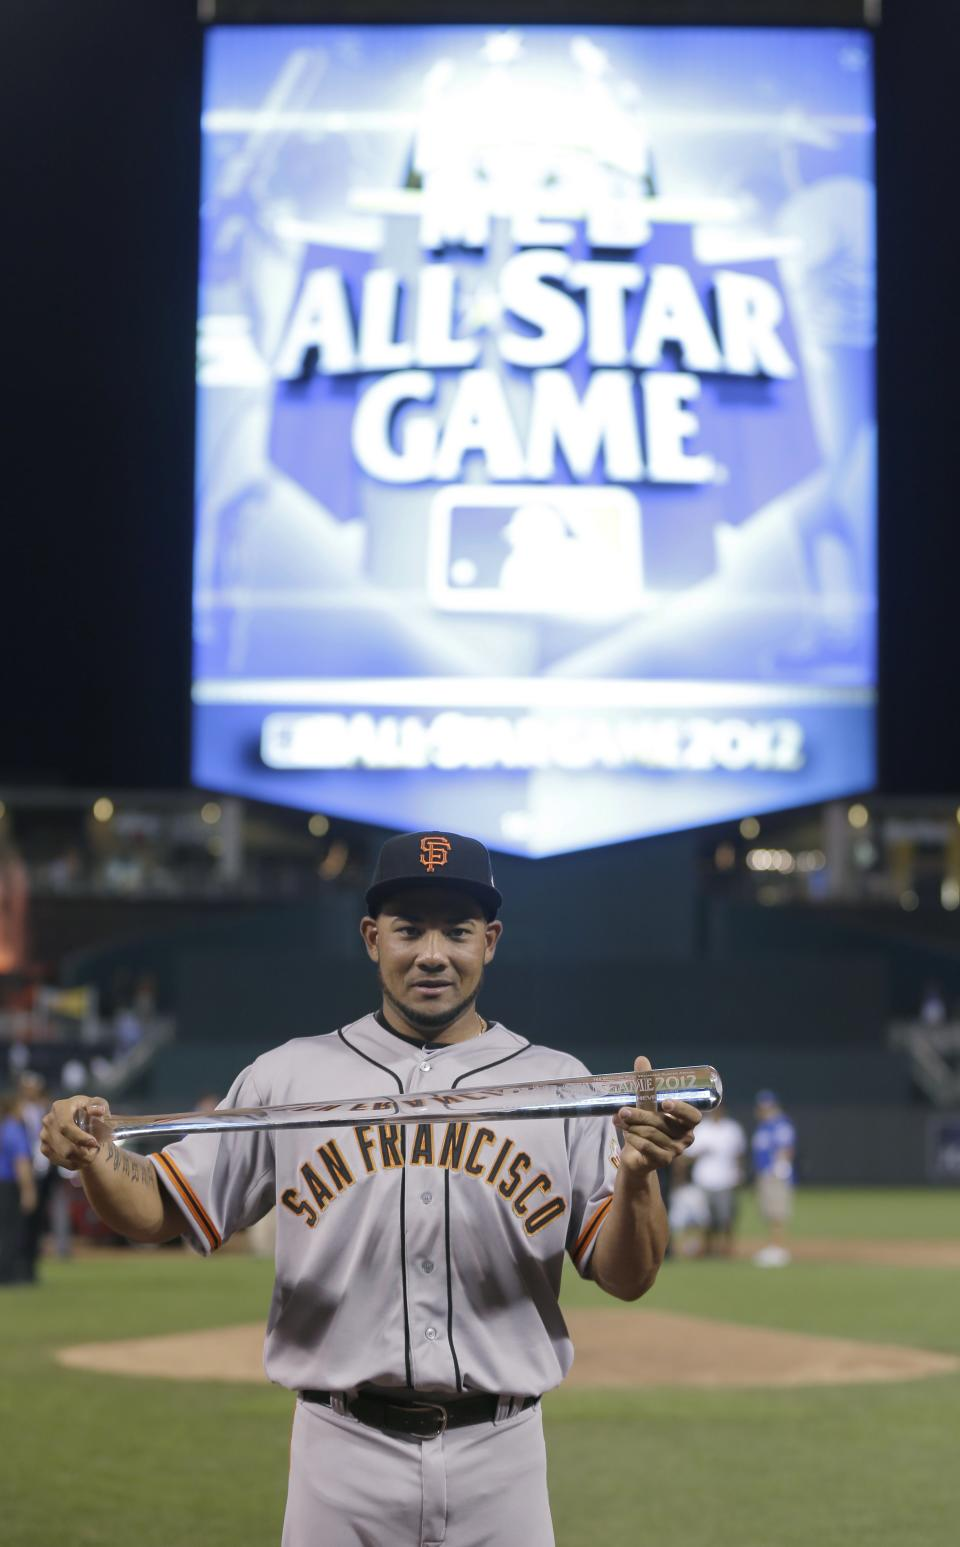 National League's Melky Cabrera, of the San Francisco Giants, shows off his MVP trophy after the MLB All-Star baseball game Tuesday, July 10, 2012, in Kansas City, Mo. The National League defeated the American League 8-0. (AP Photo/Charlie Riedel)